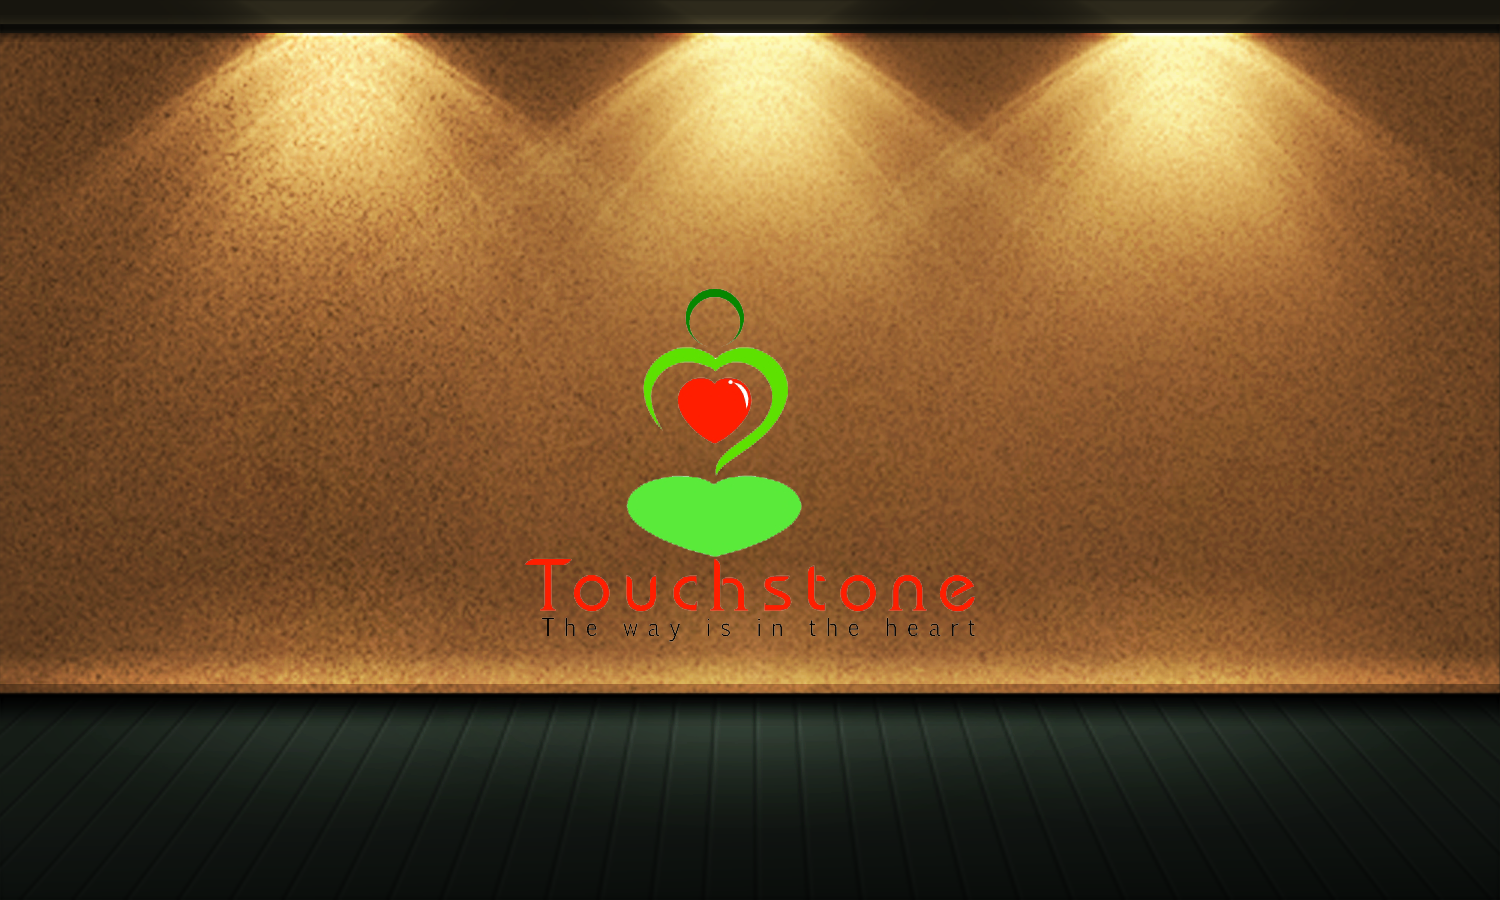 design awesome 3 logo designs for your business